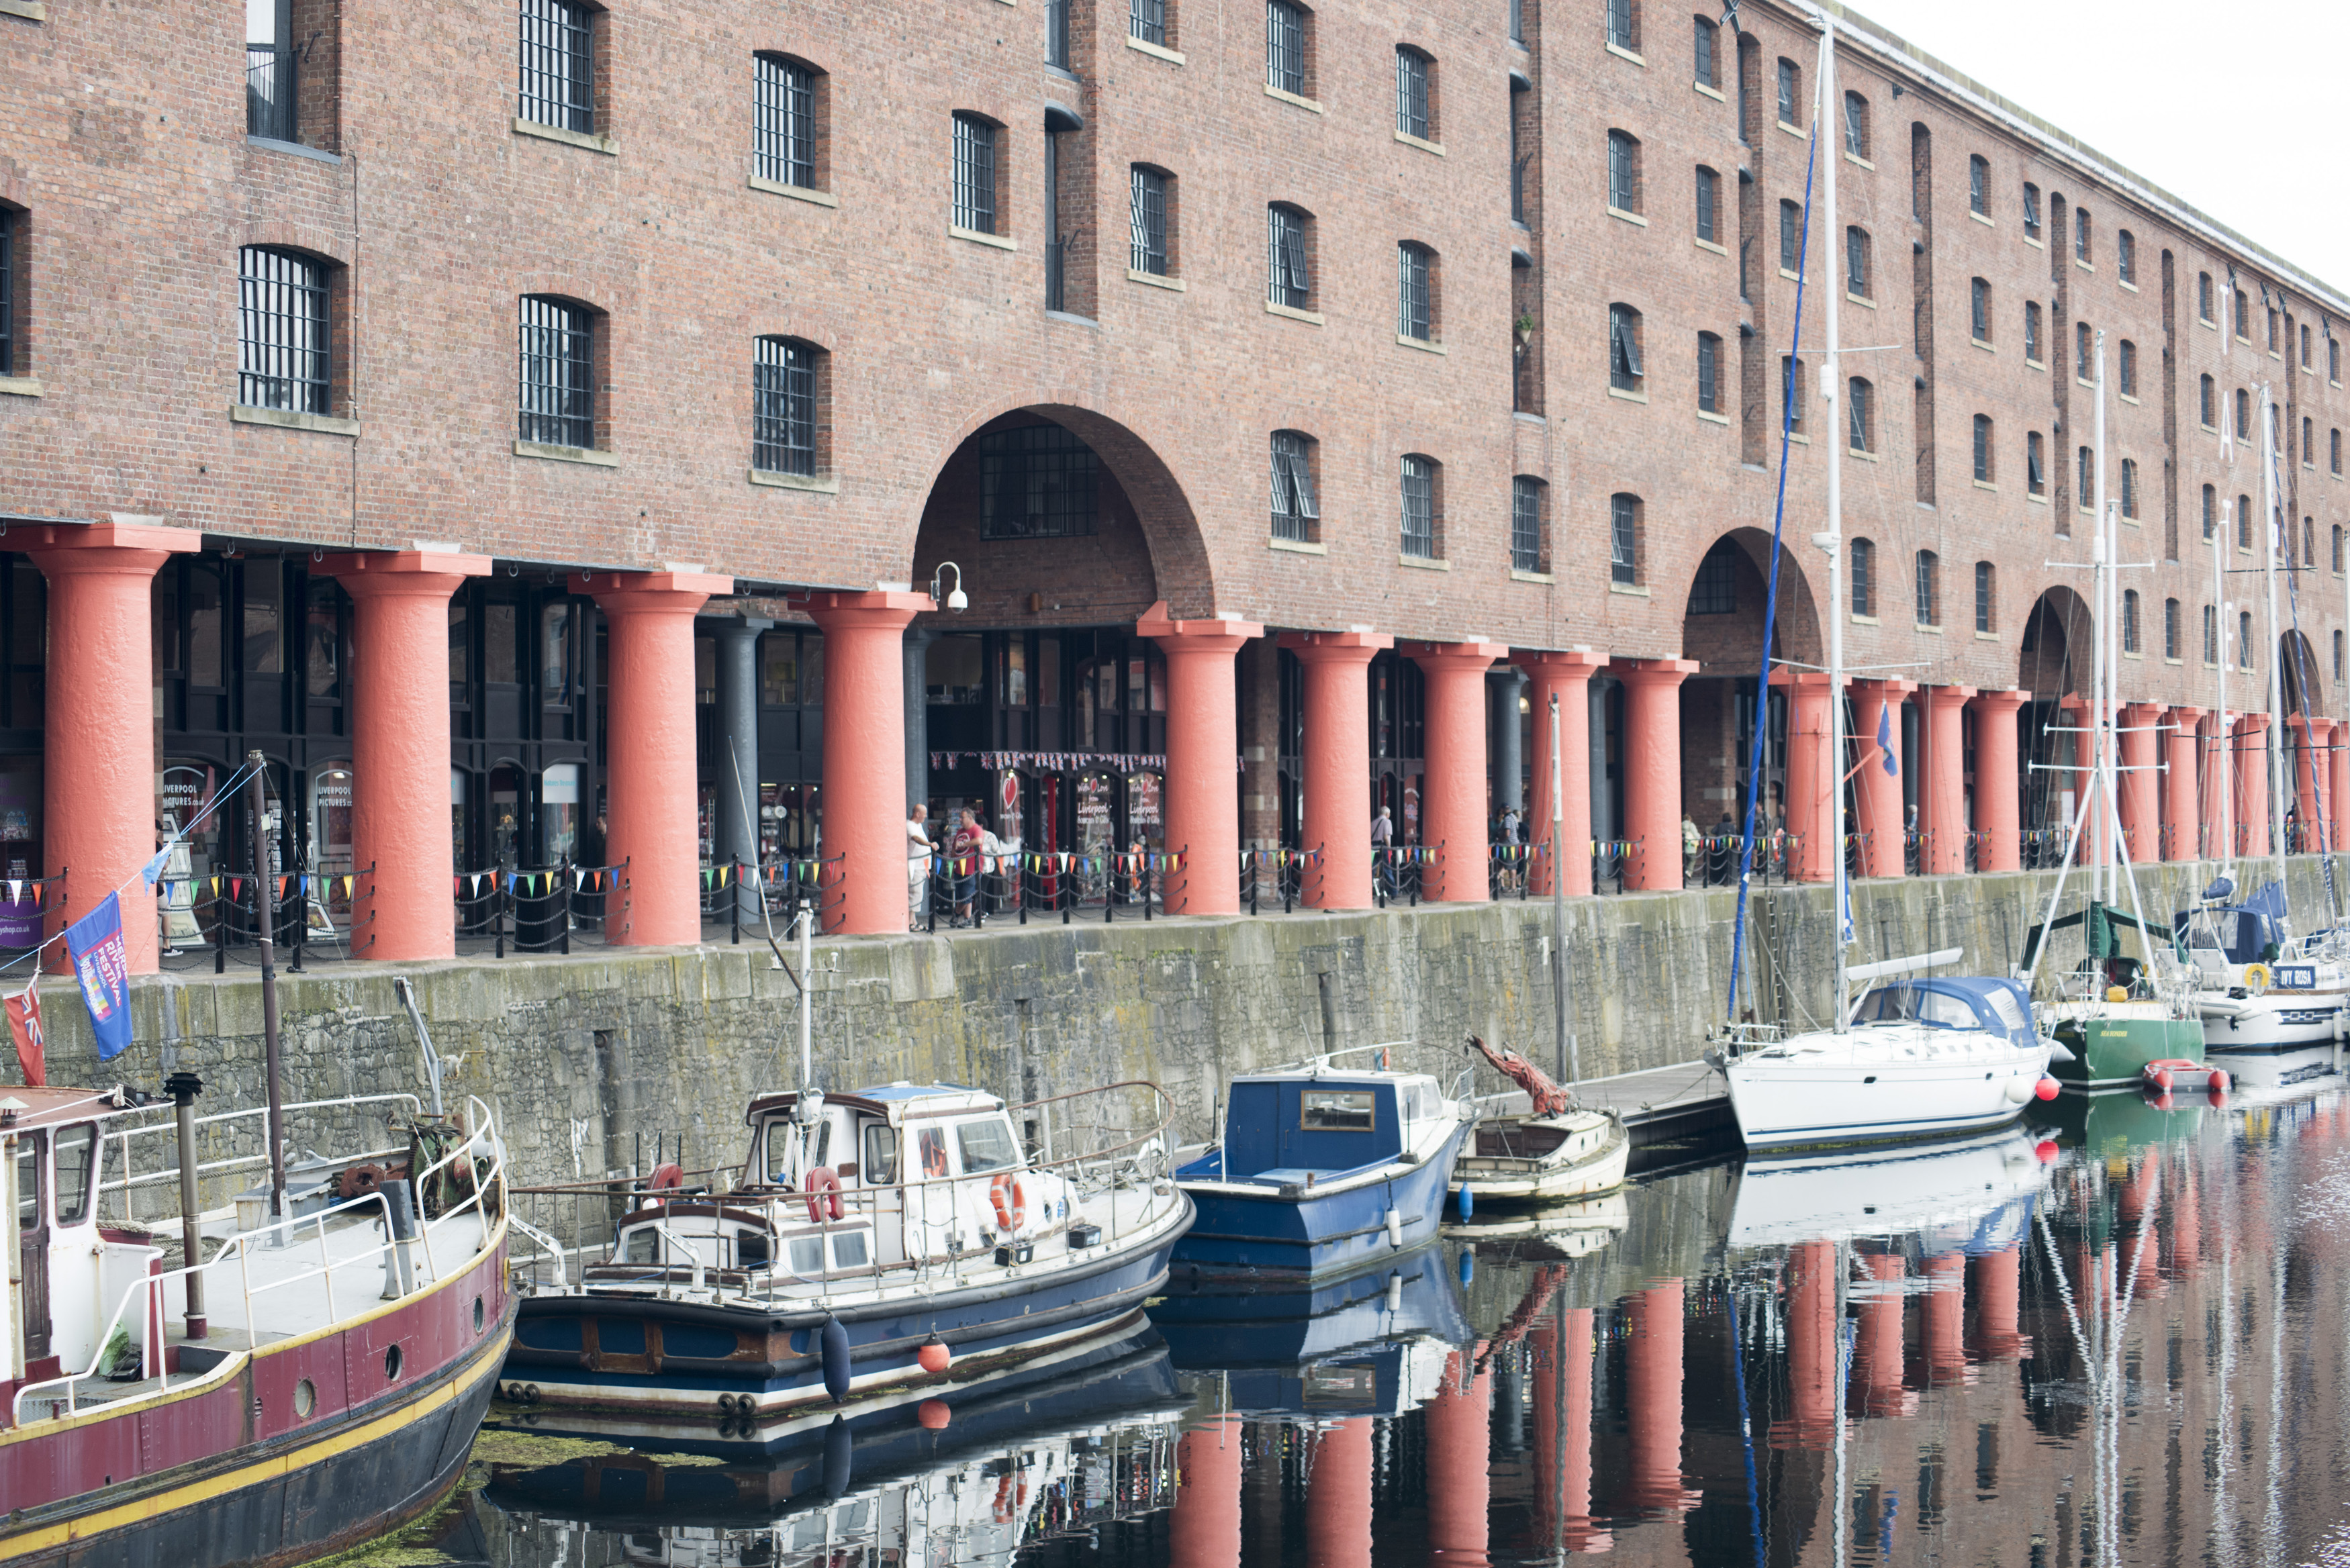 Large red support columns reflecting in water with various little boats docked at Liverpool Albert